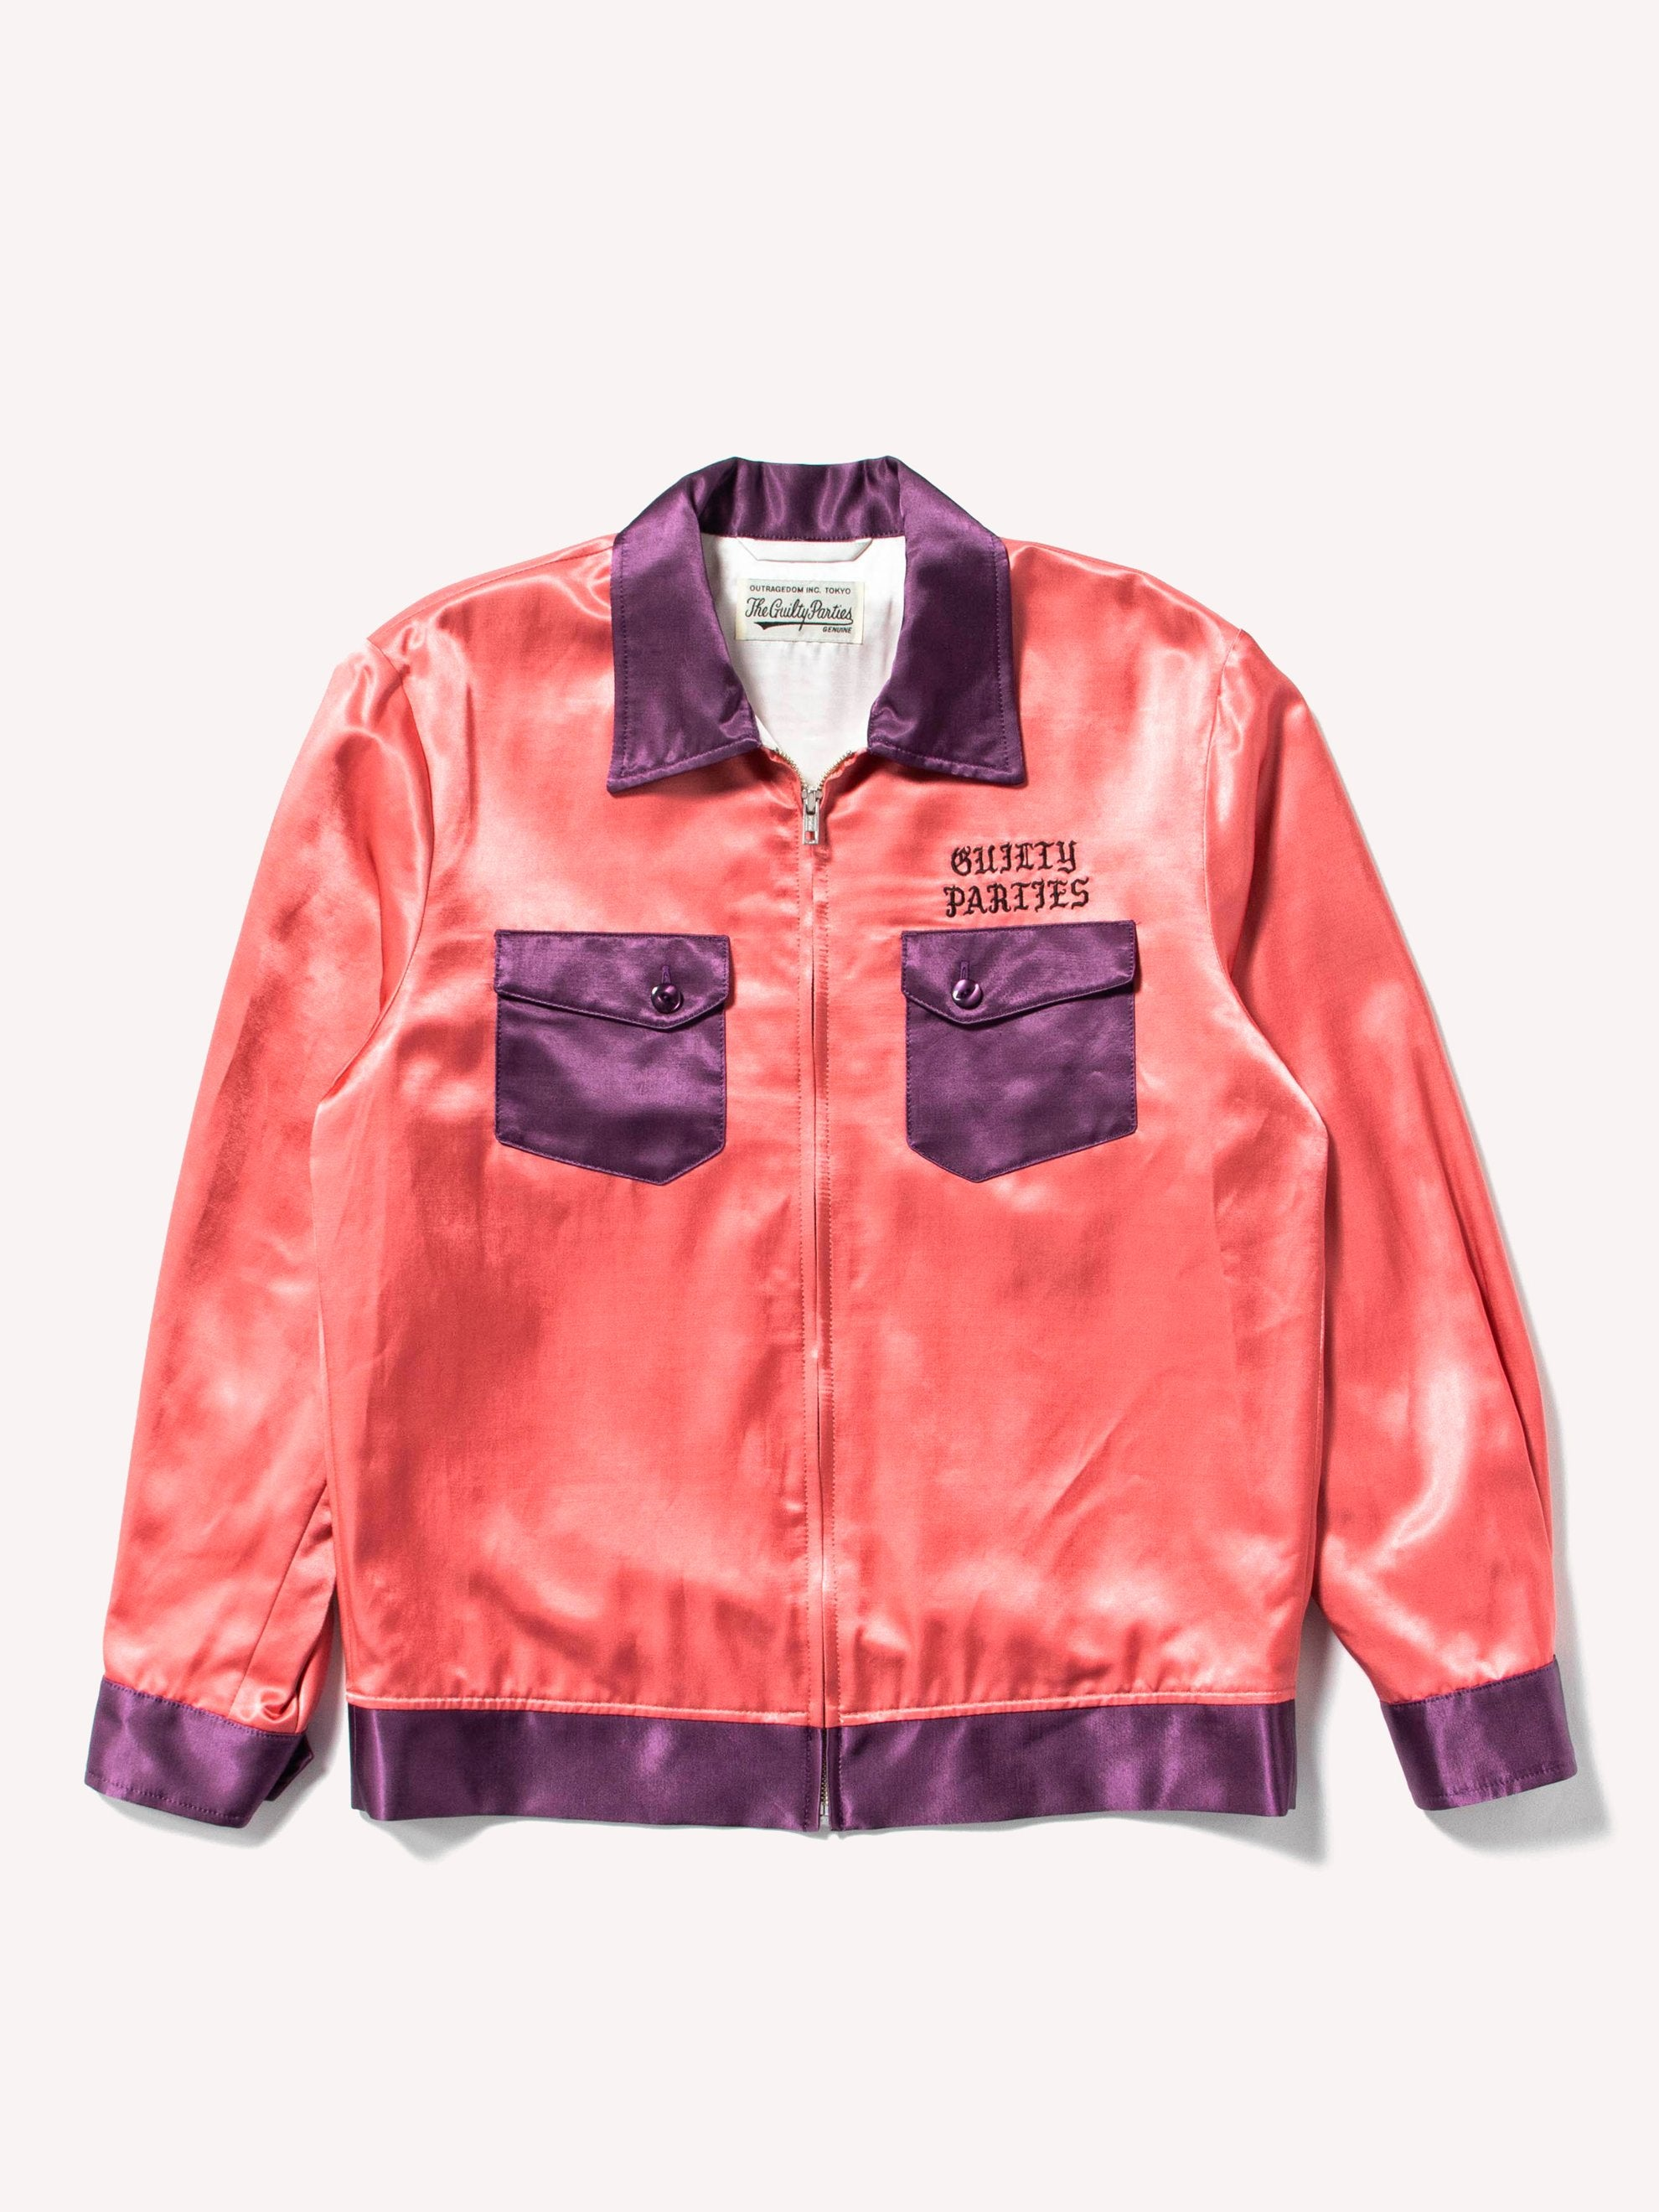 Two-Tone 50's Jacket